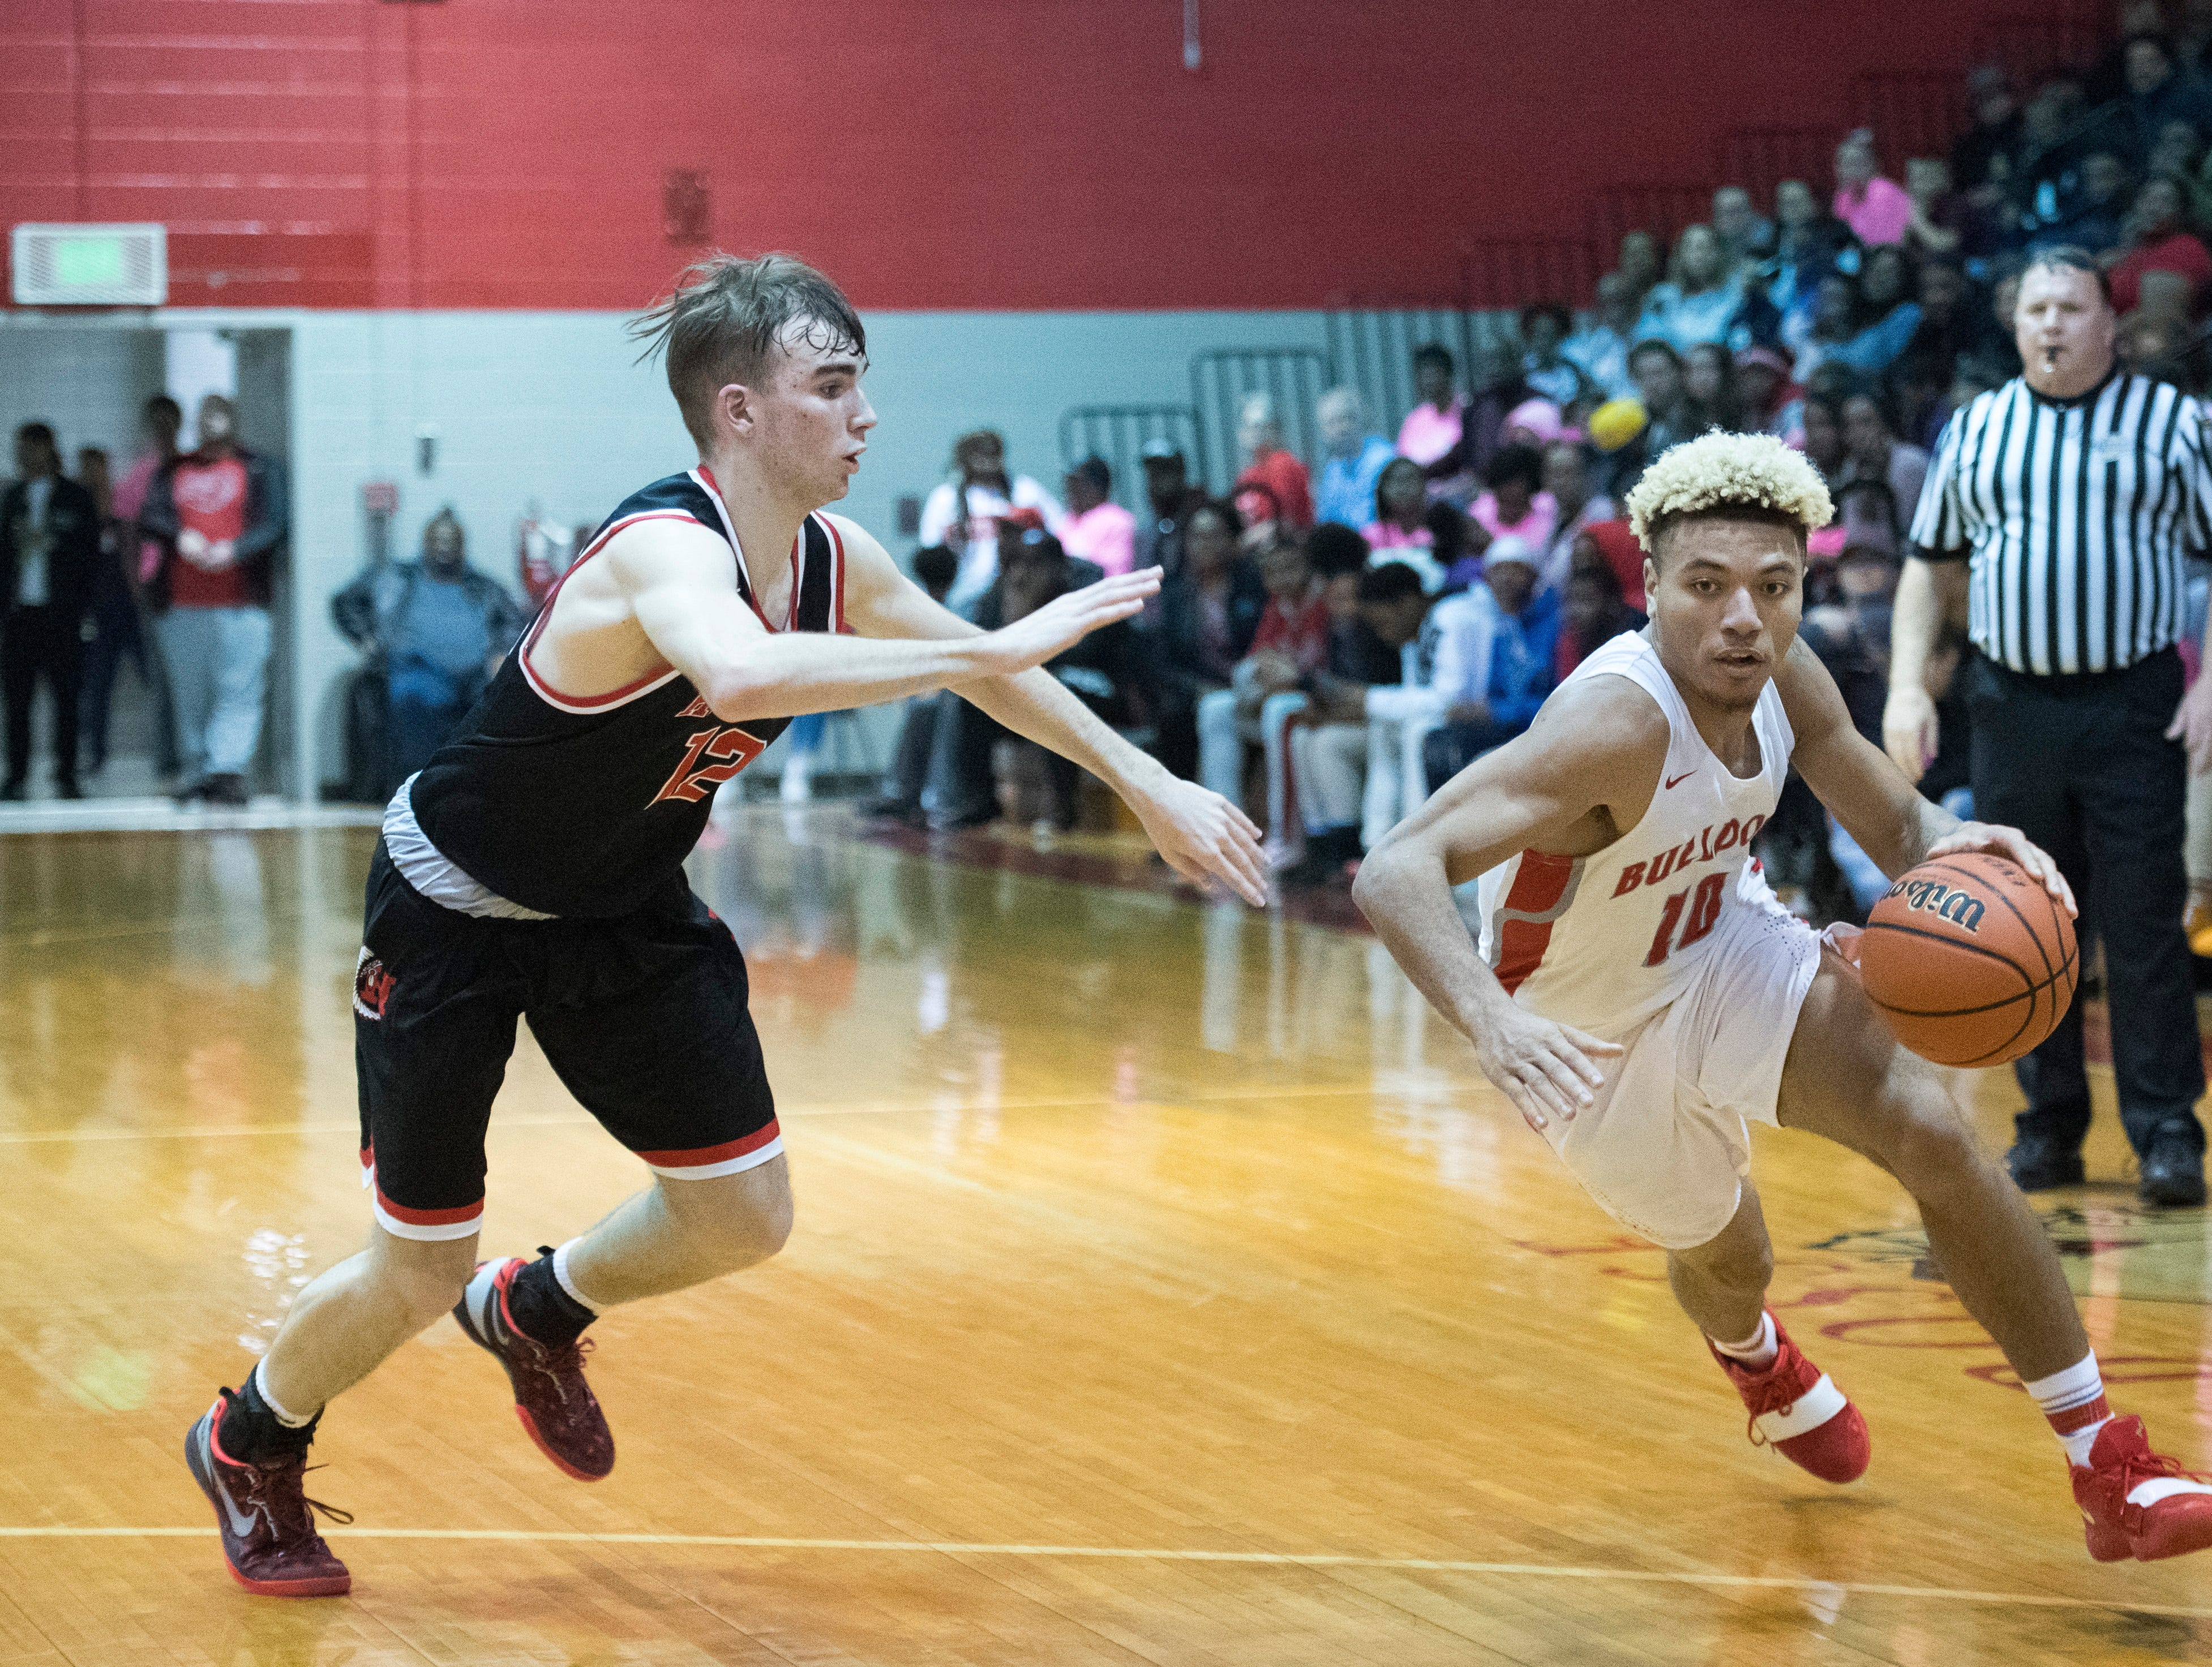 Bosse's Javen Layne (10) rushes to the basket during the Harrison vs Bosse game at Bosse High School Tuesday, Feb. 12, 2019. The Bosse Bulldogs won 74-56.